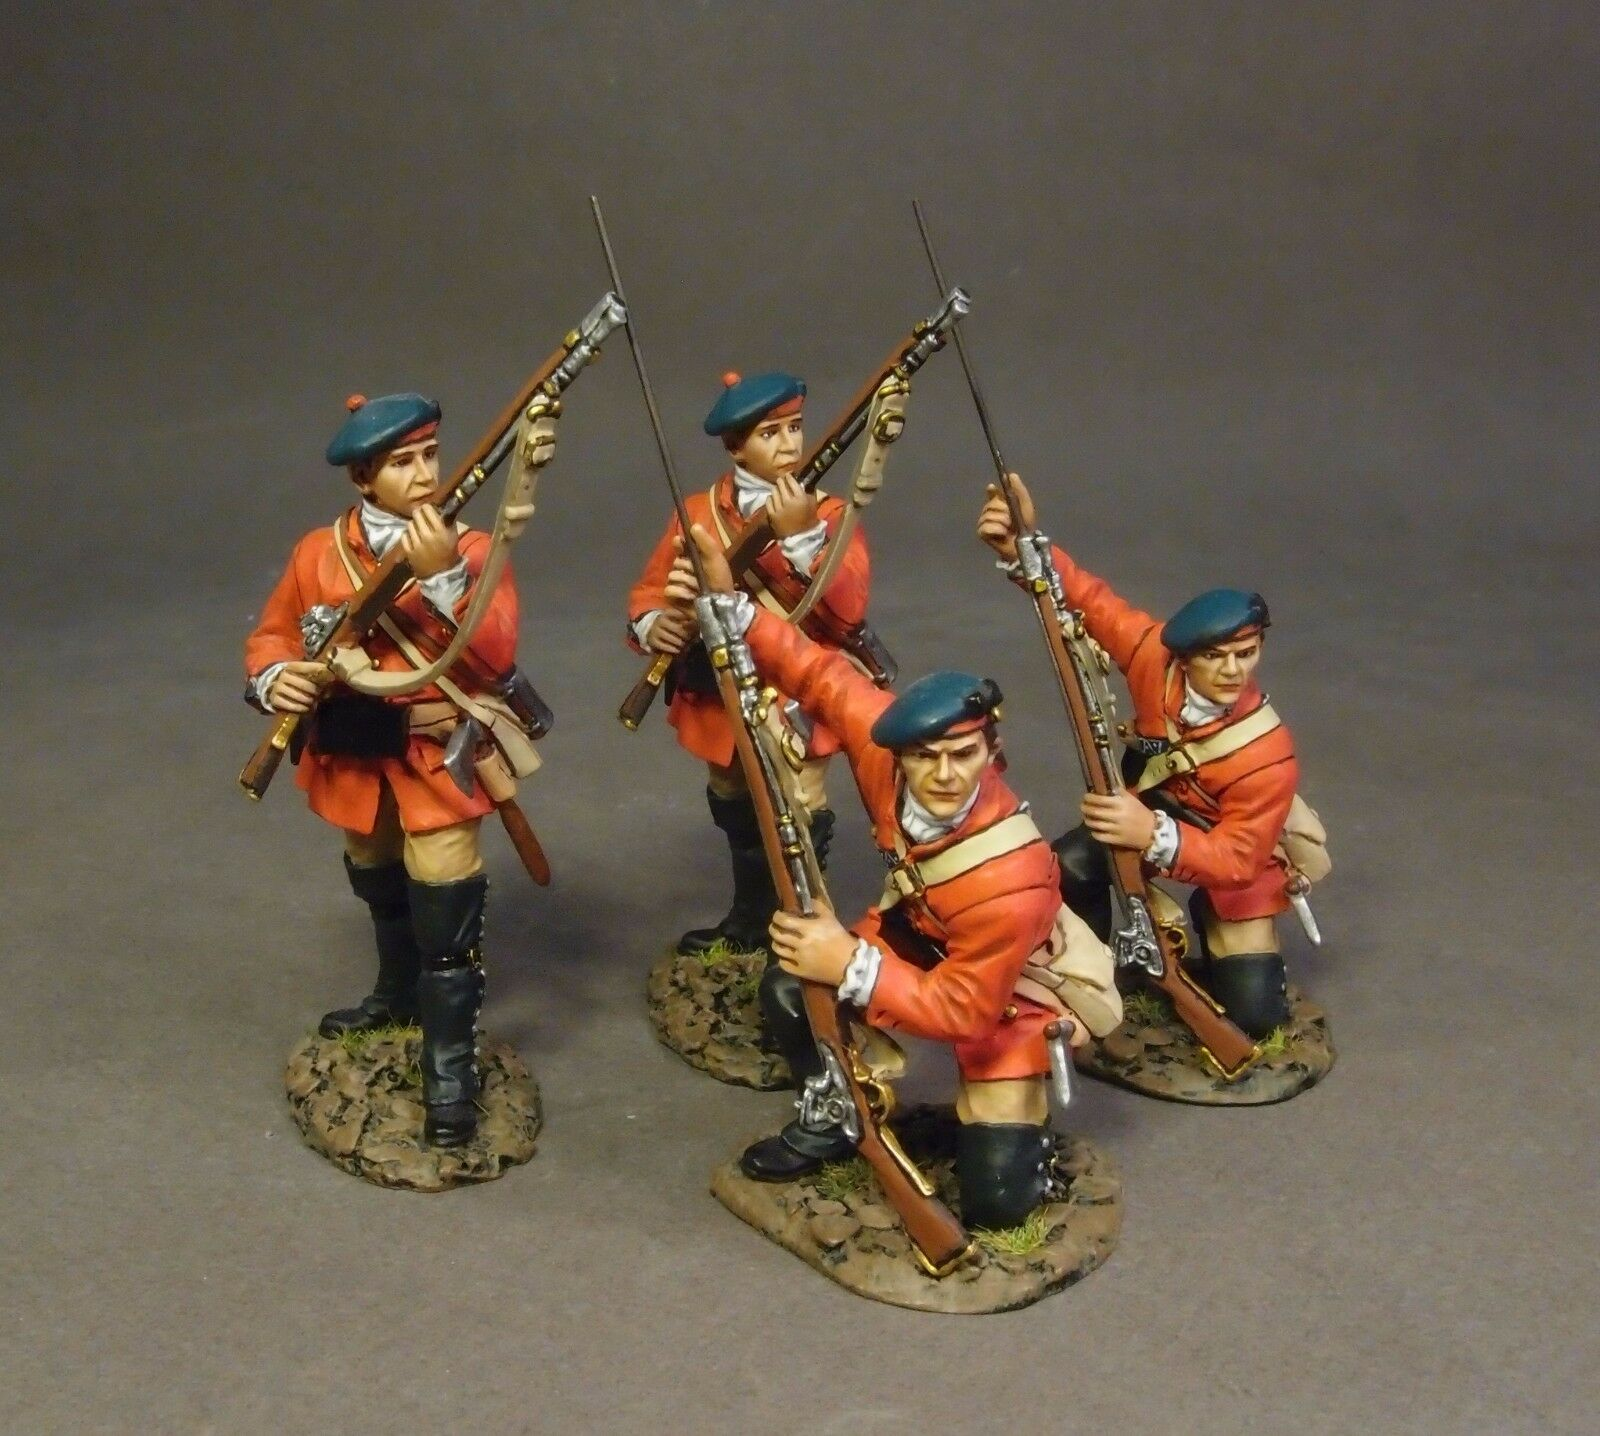 JOHN JENKINS BATTLE OF BRUSHY RUN BRLX-03N BRITISH LIGHT INFANTRY SKIRMISHING MB